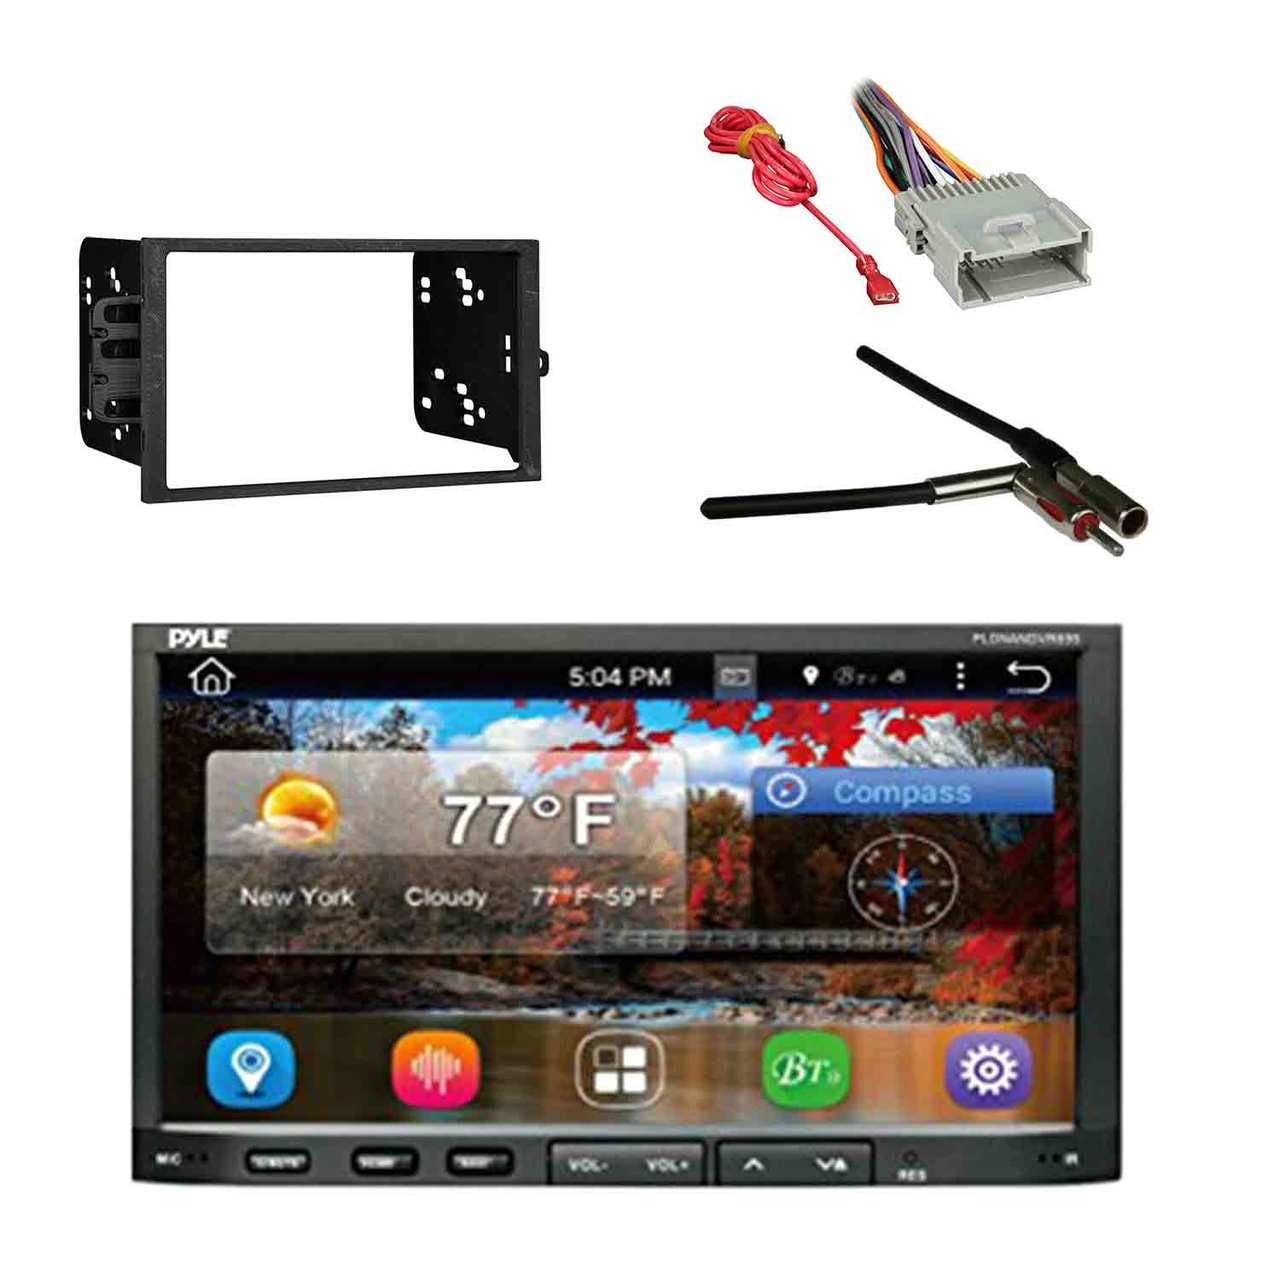 hight resolution of car stereo 2 din receiver with metra dash kit metra adapter pyle wiring harness s10